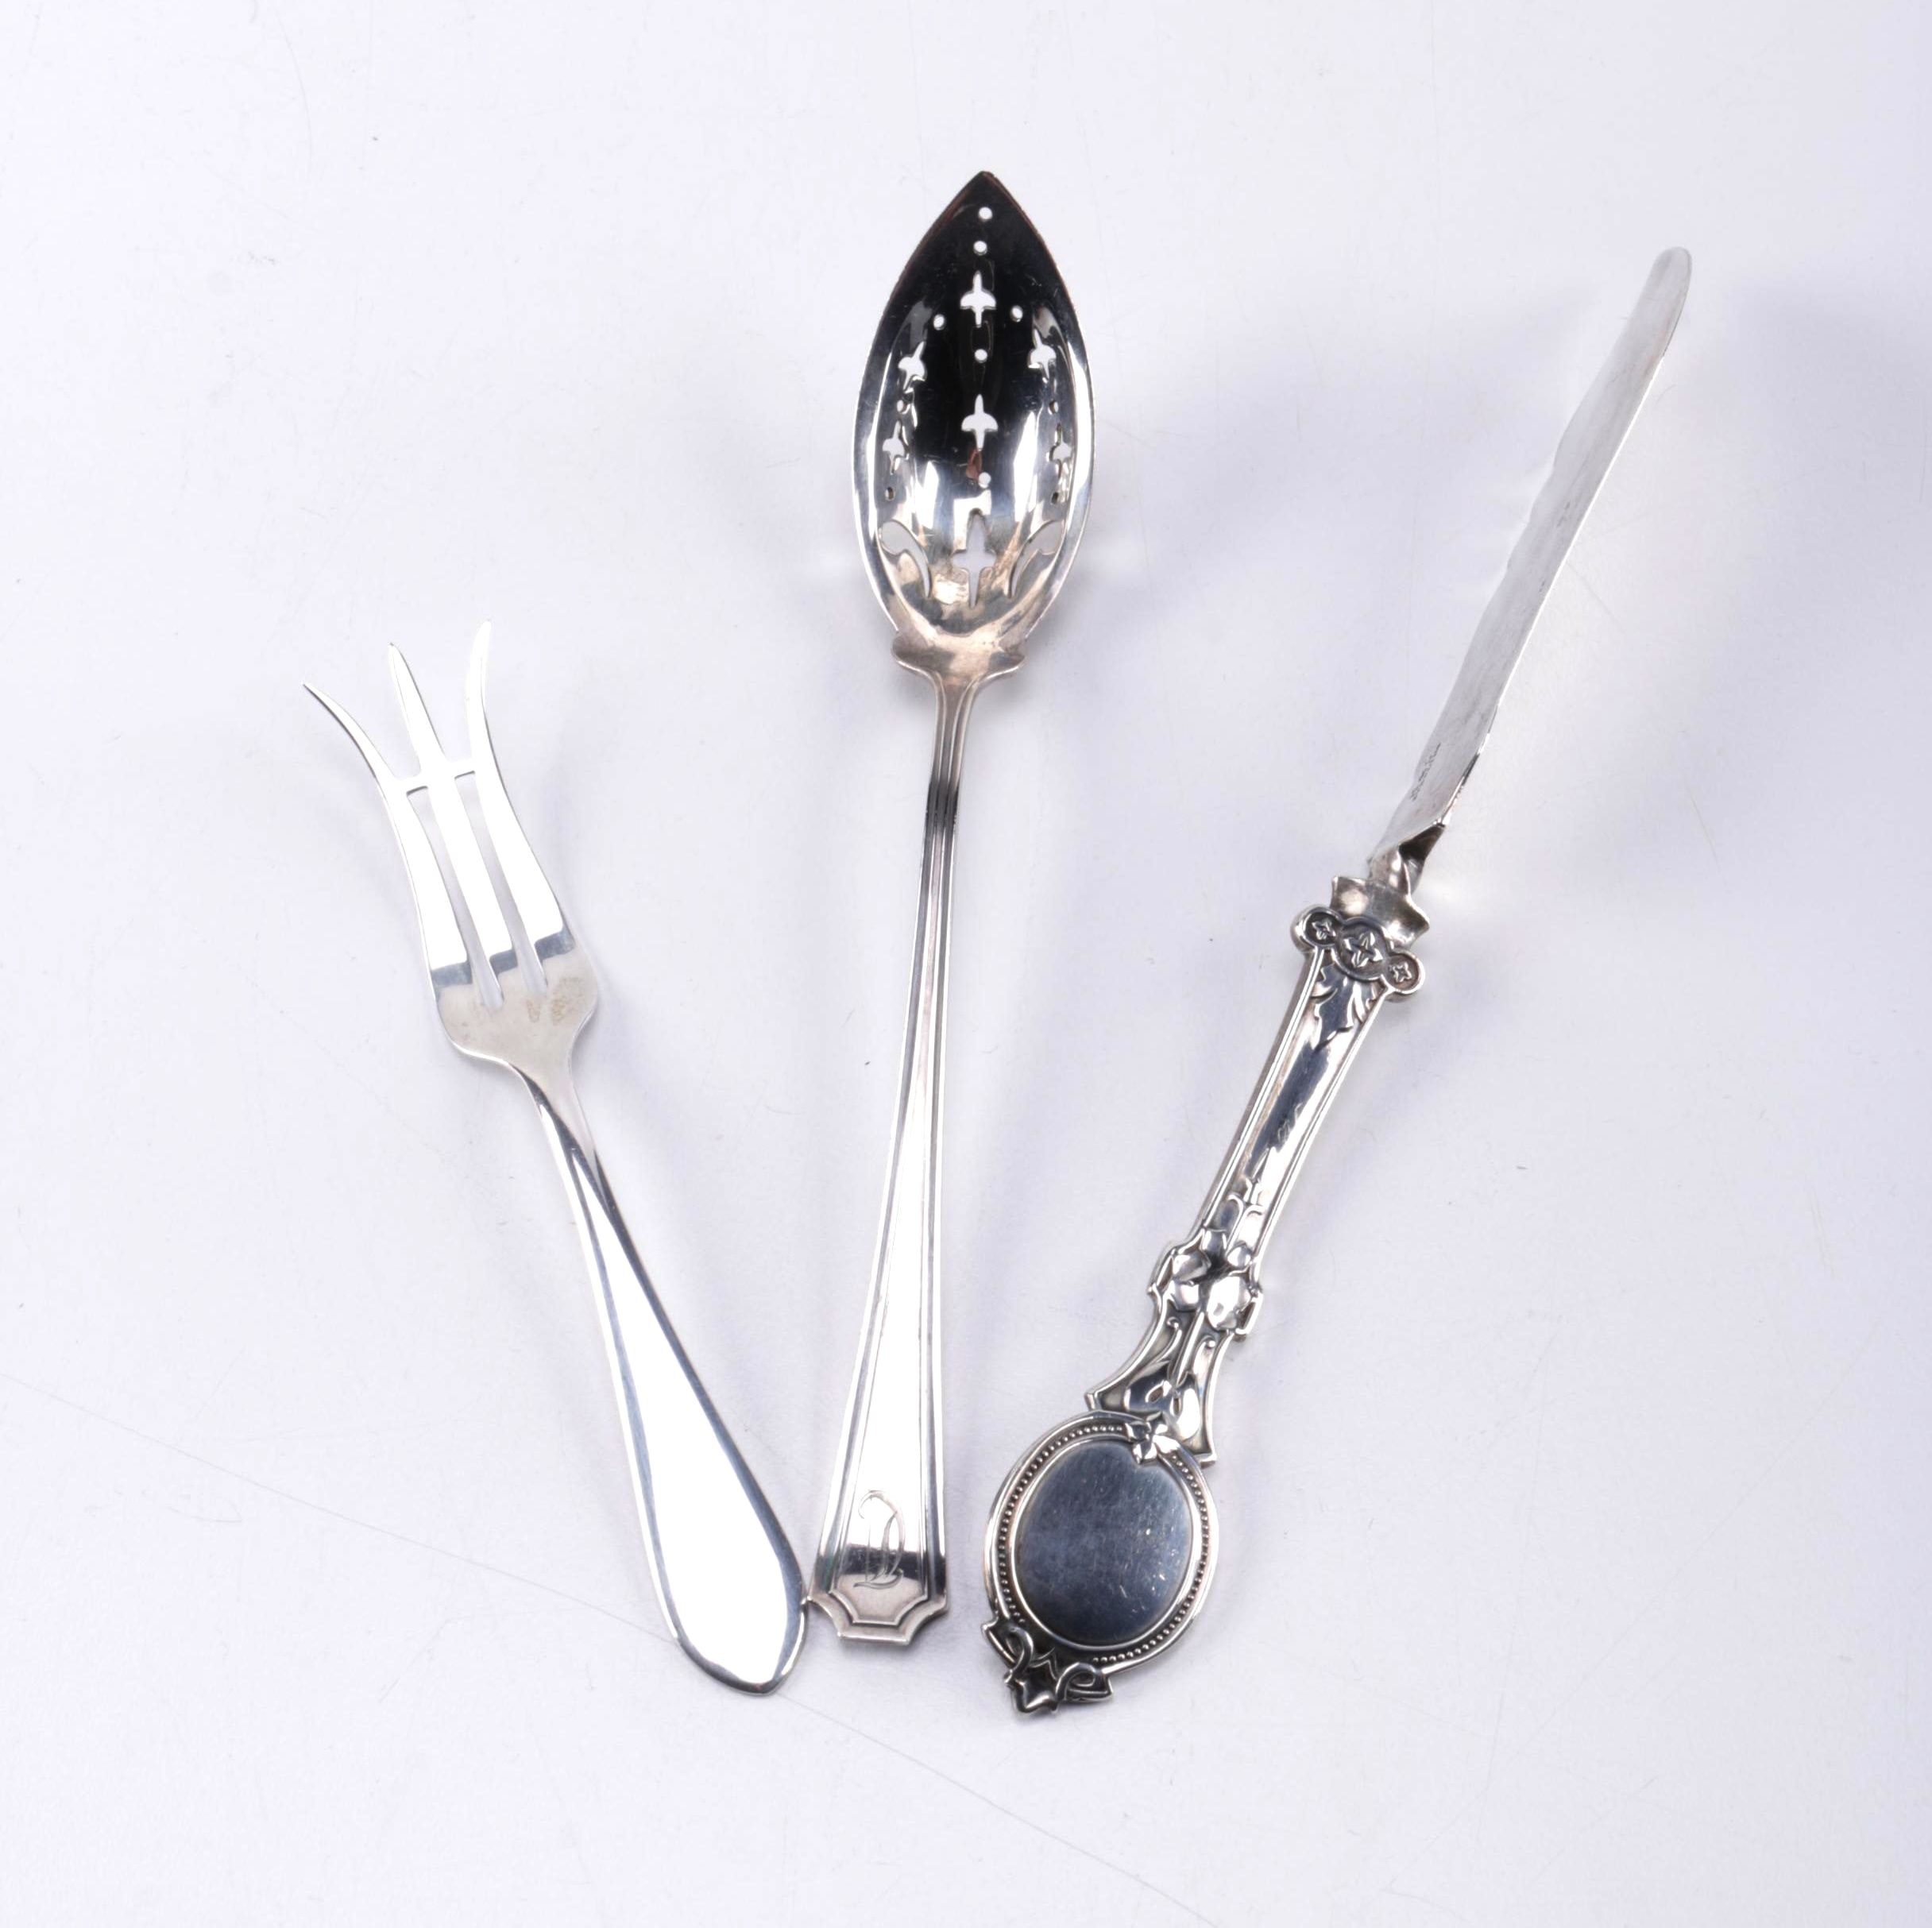 Arts and Crafts Handicraft Shop Sterling Knife and Other Flatware